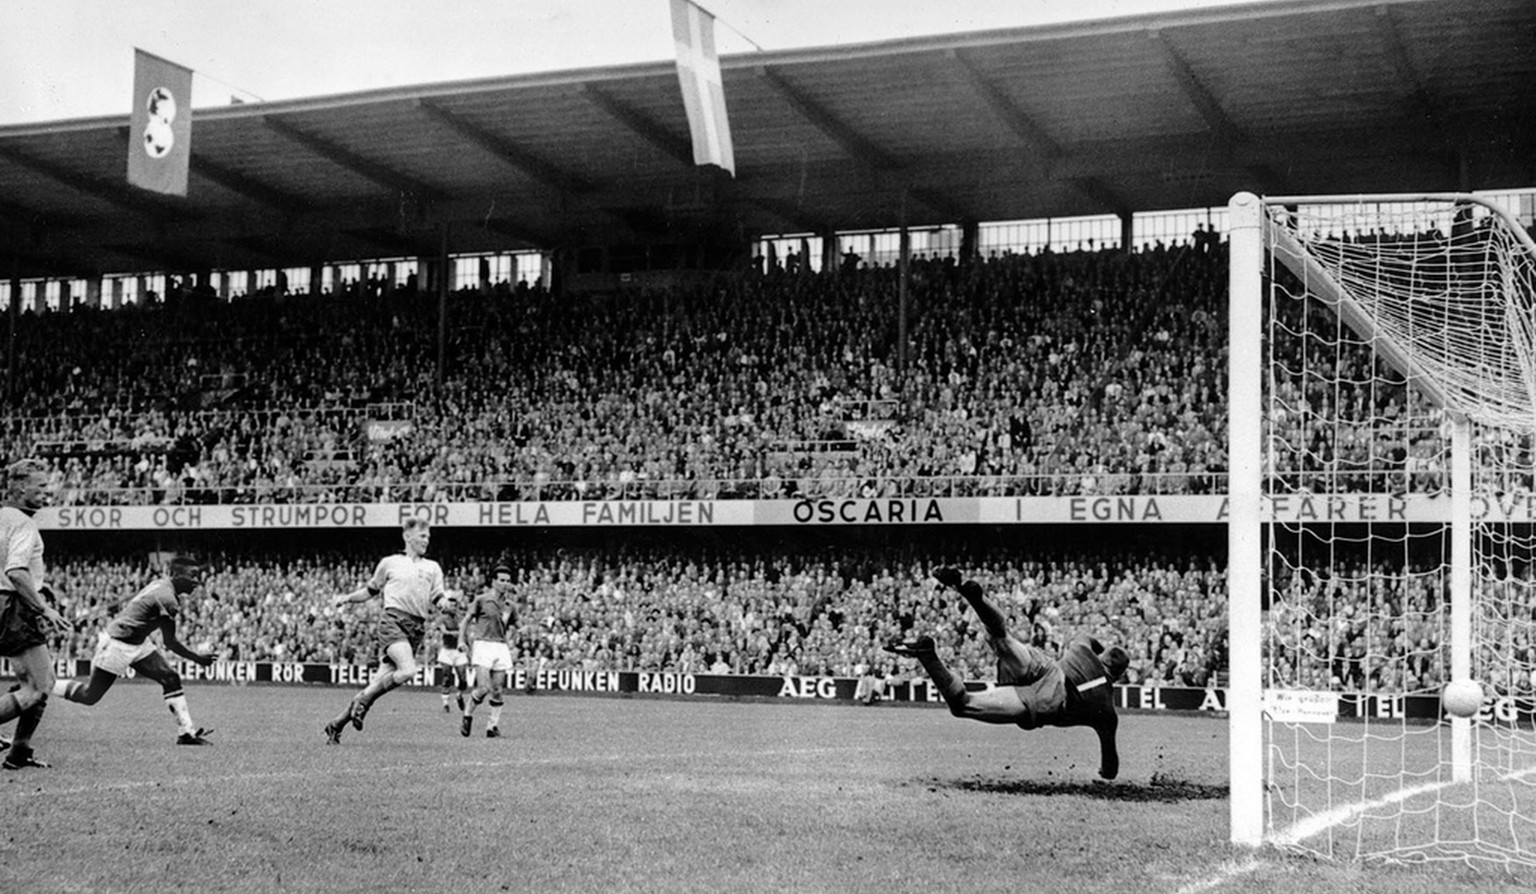 Seventeen-year-old Pele, second from left, scores Brazil's third goal in the World Cup soccer final against Sweden in Stockholm, June 29, 1958. At right, Sweden's goalkeeper Kalle Svensson makes a futile effort to make a save. Brazil won 5-2 to take the World Cup championship. (KEYSTONE/AP Photo)